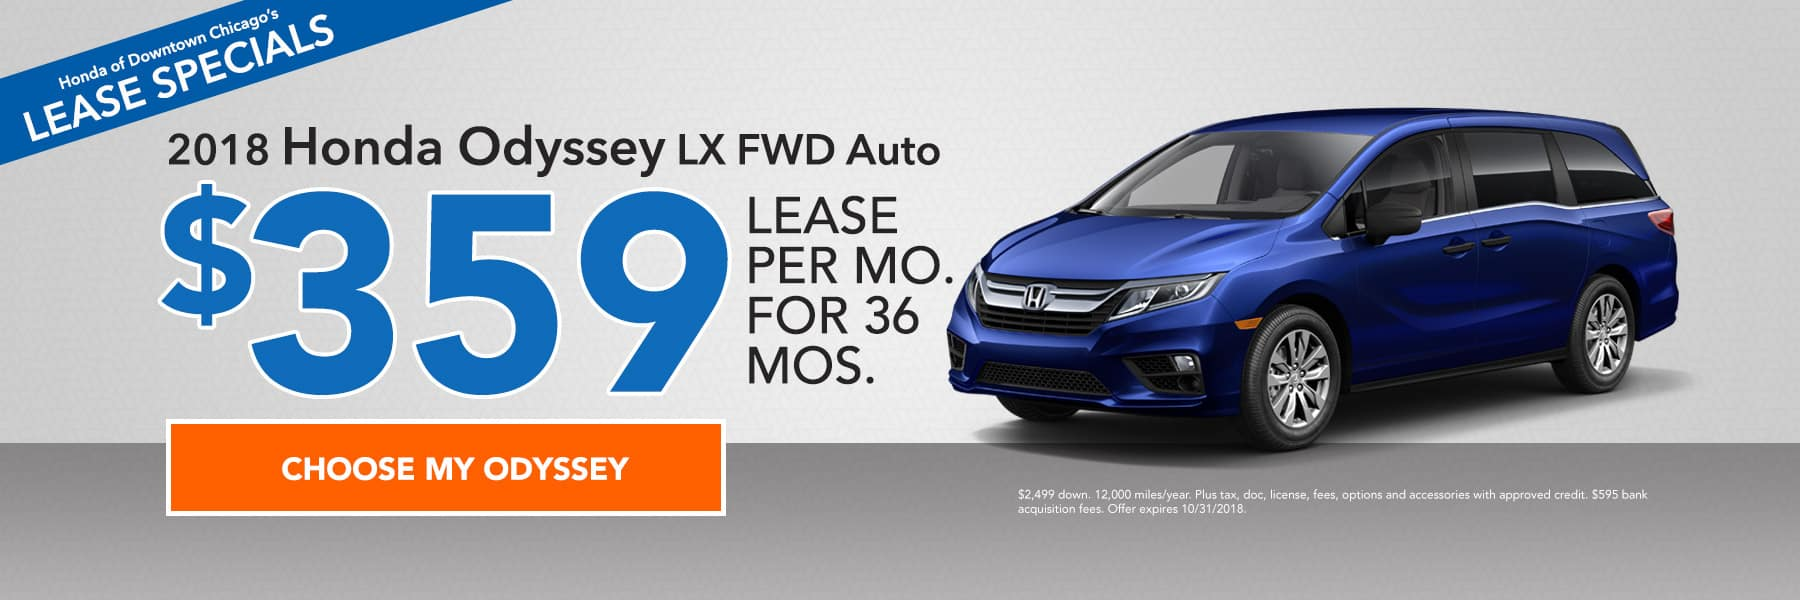 Lease Specials   2018 Honda Odyssey LX FWD Auto   Lease For $359/month For